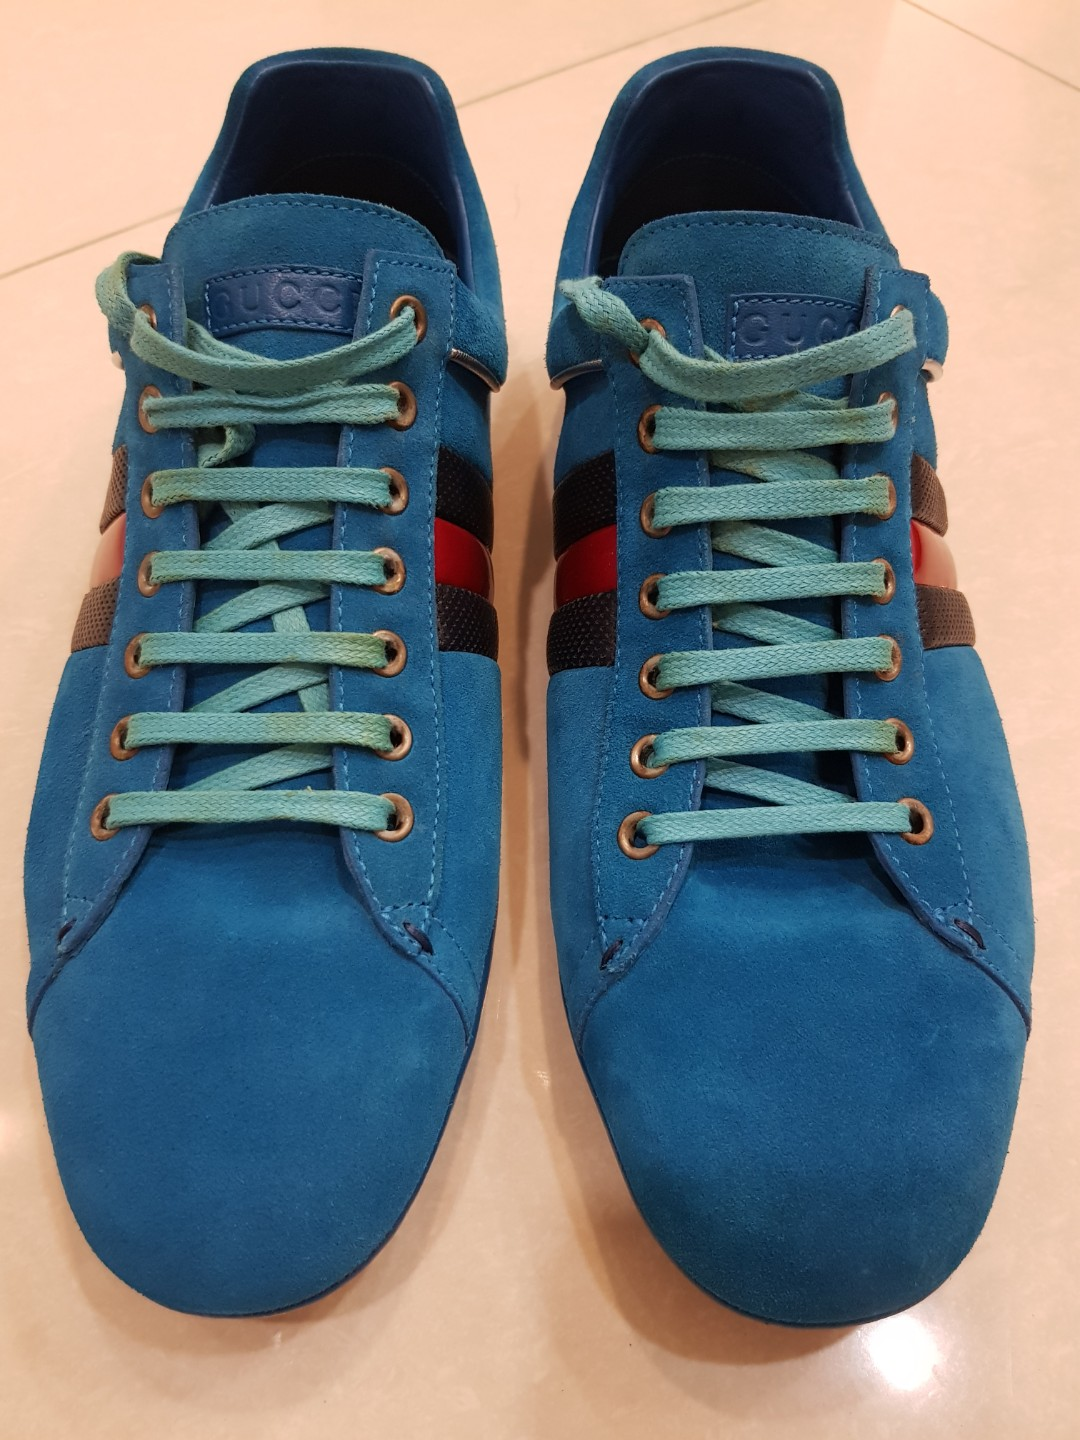 35acd44b65e Gucci Sneakers BRAND NEW Shoe shoes